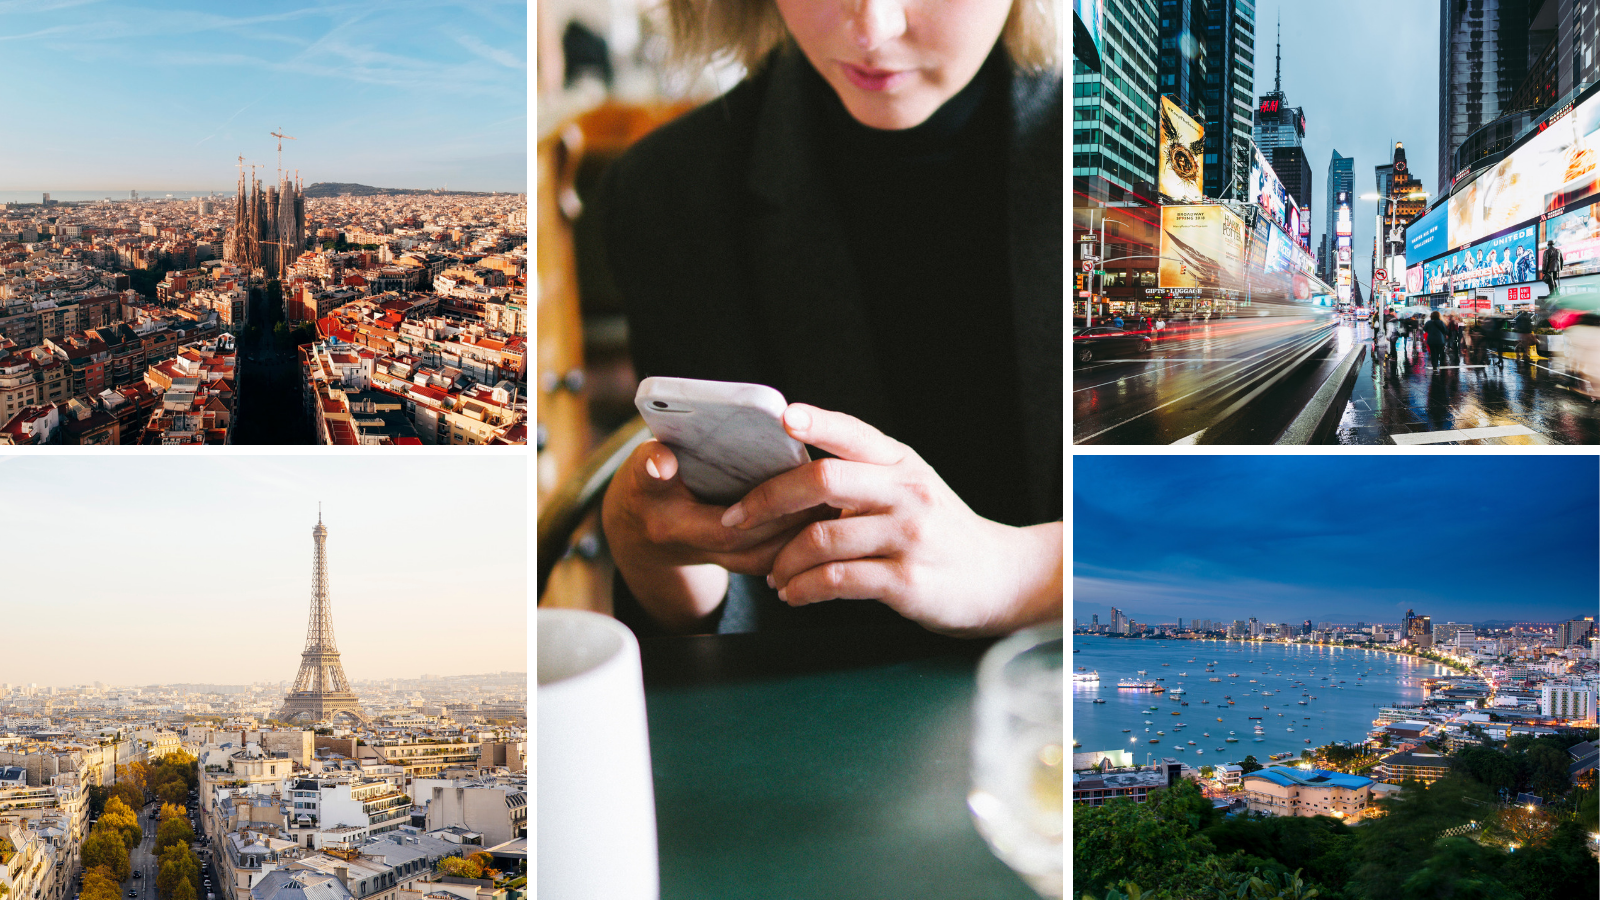 Revealed: The best city in the world for free WiFi